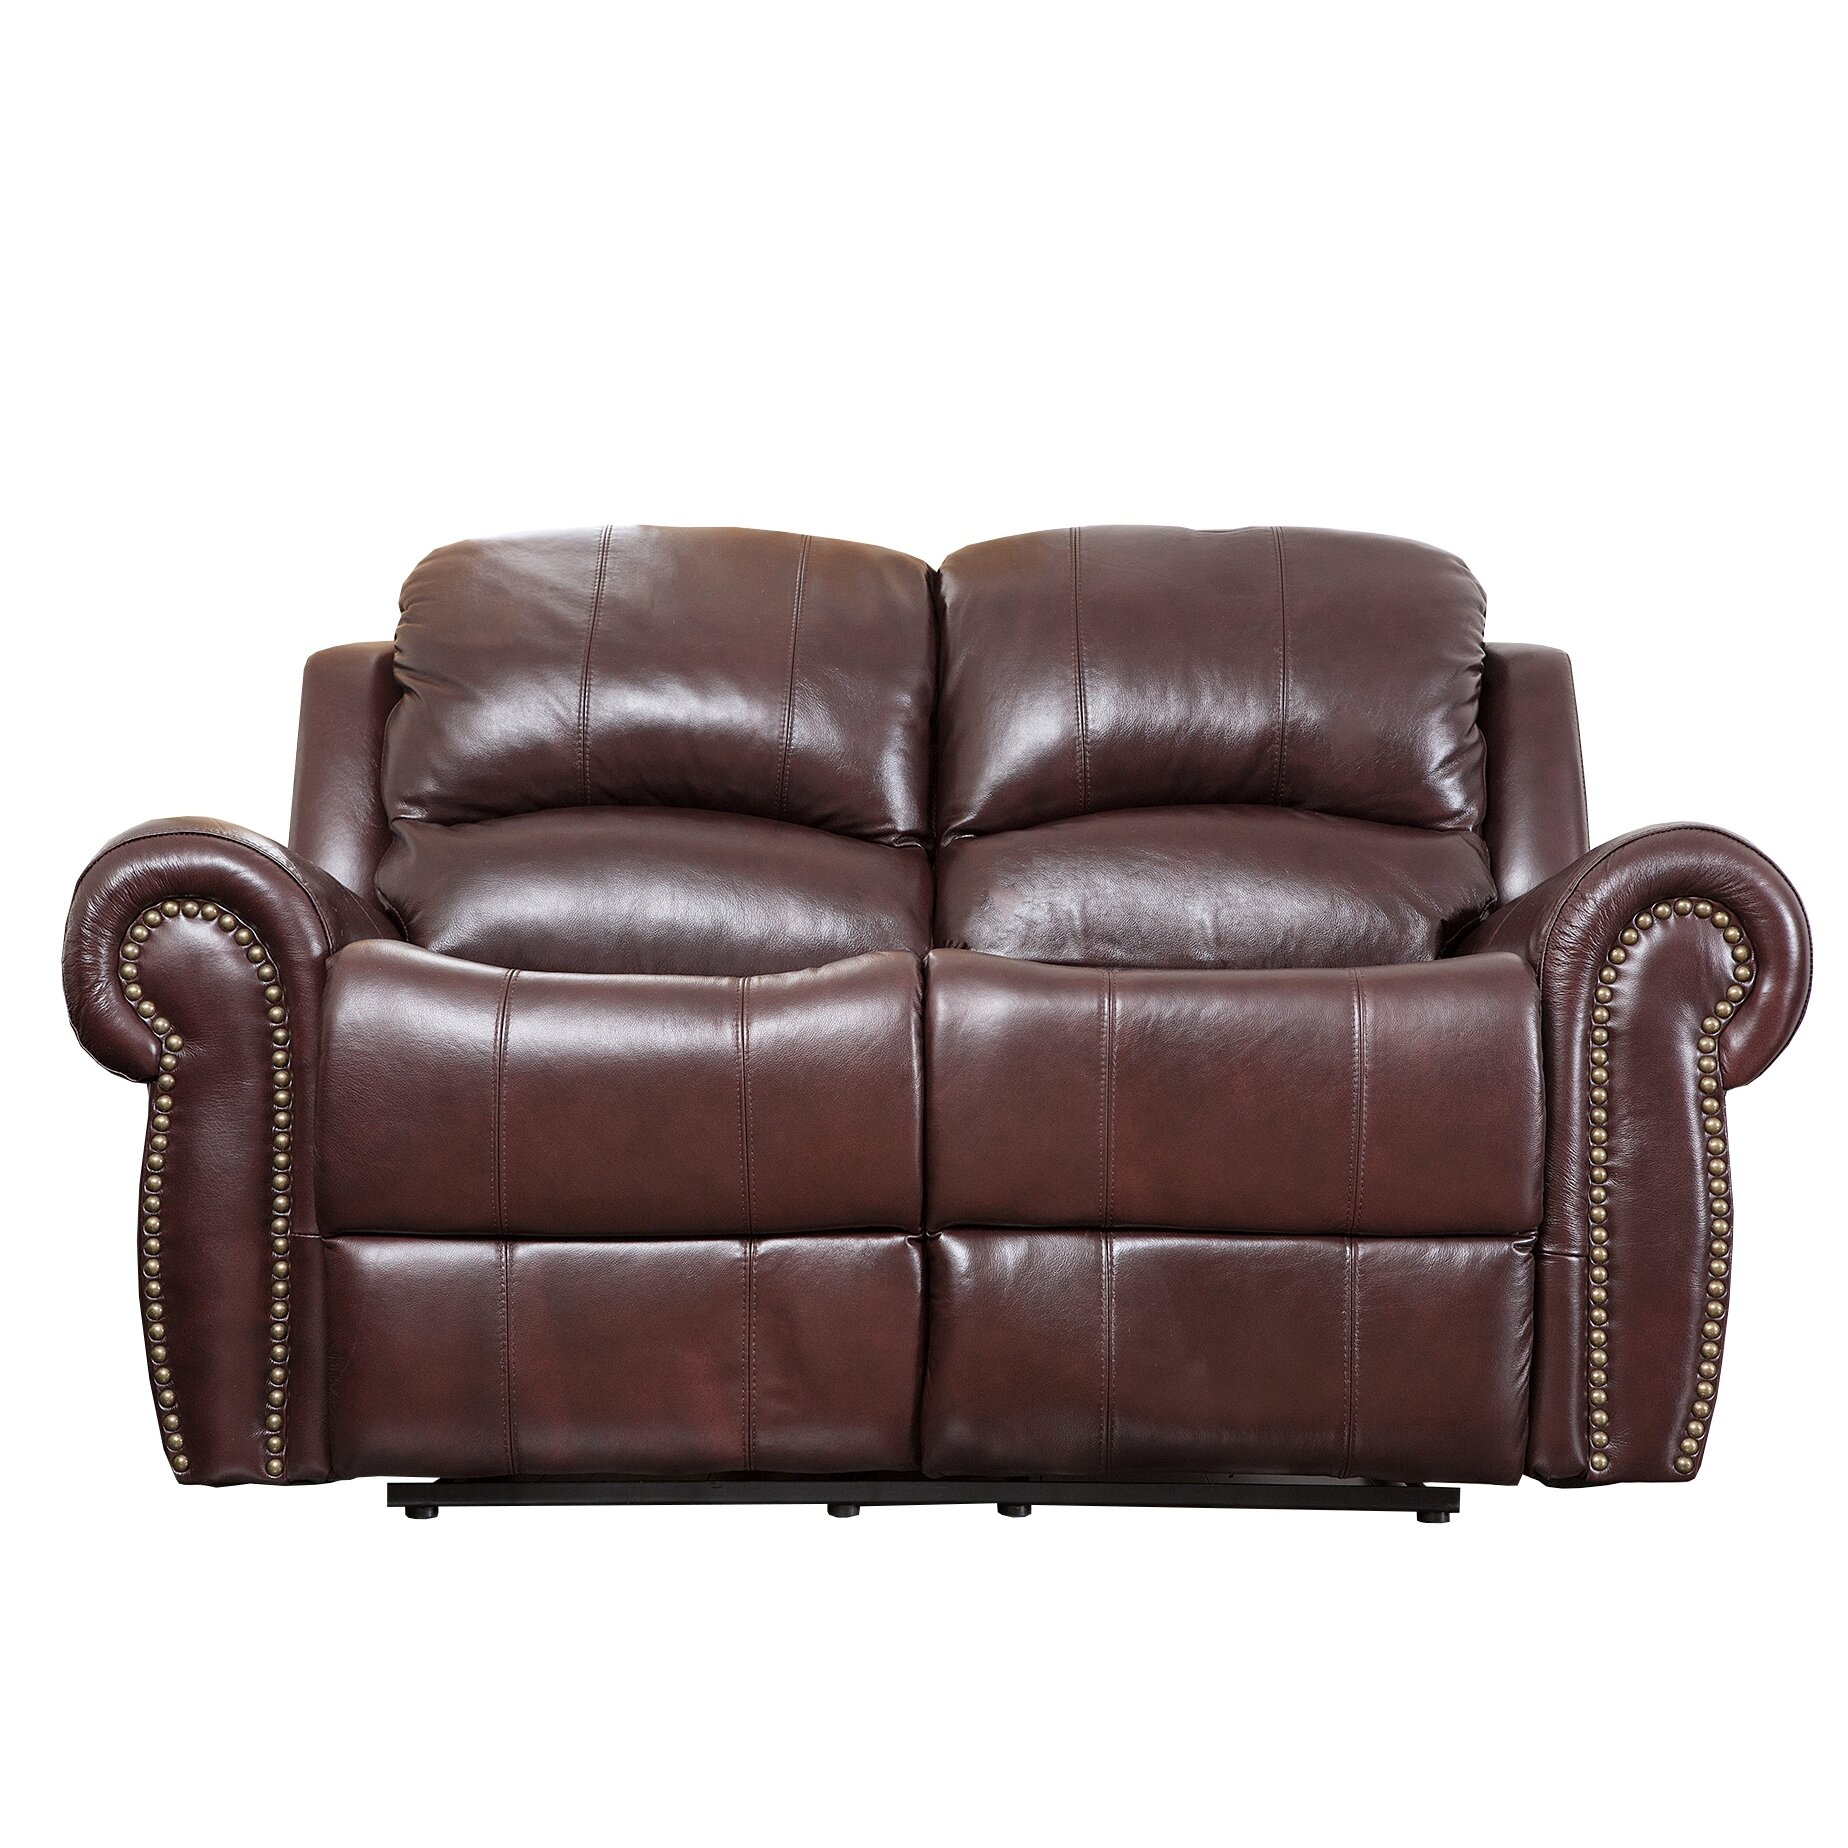 Abbyson Living Sedona Leather Reclining Loveseat Reviews Wayfair